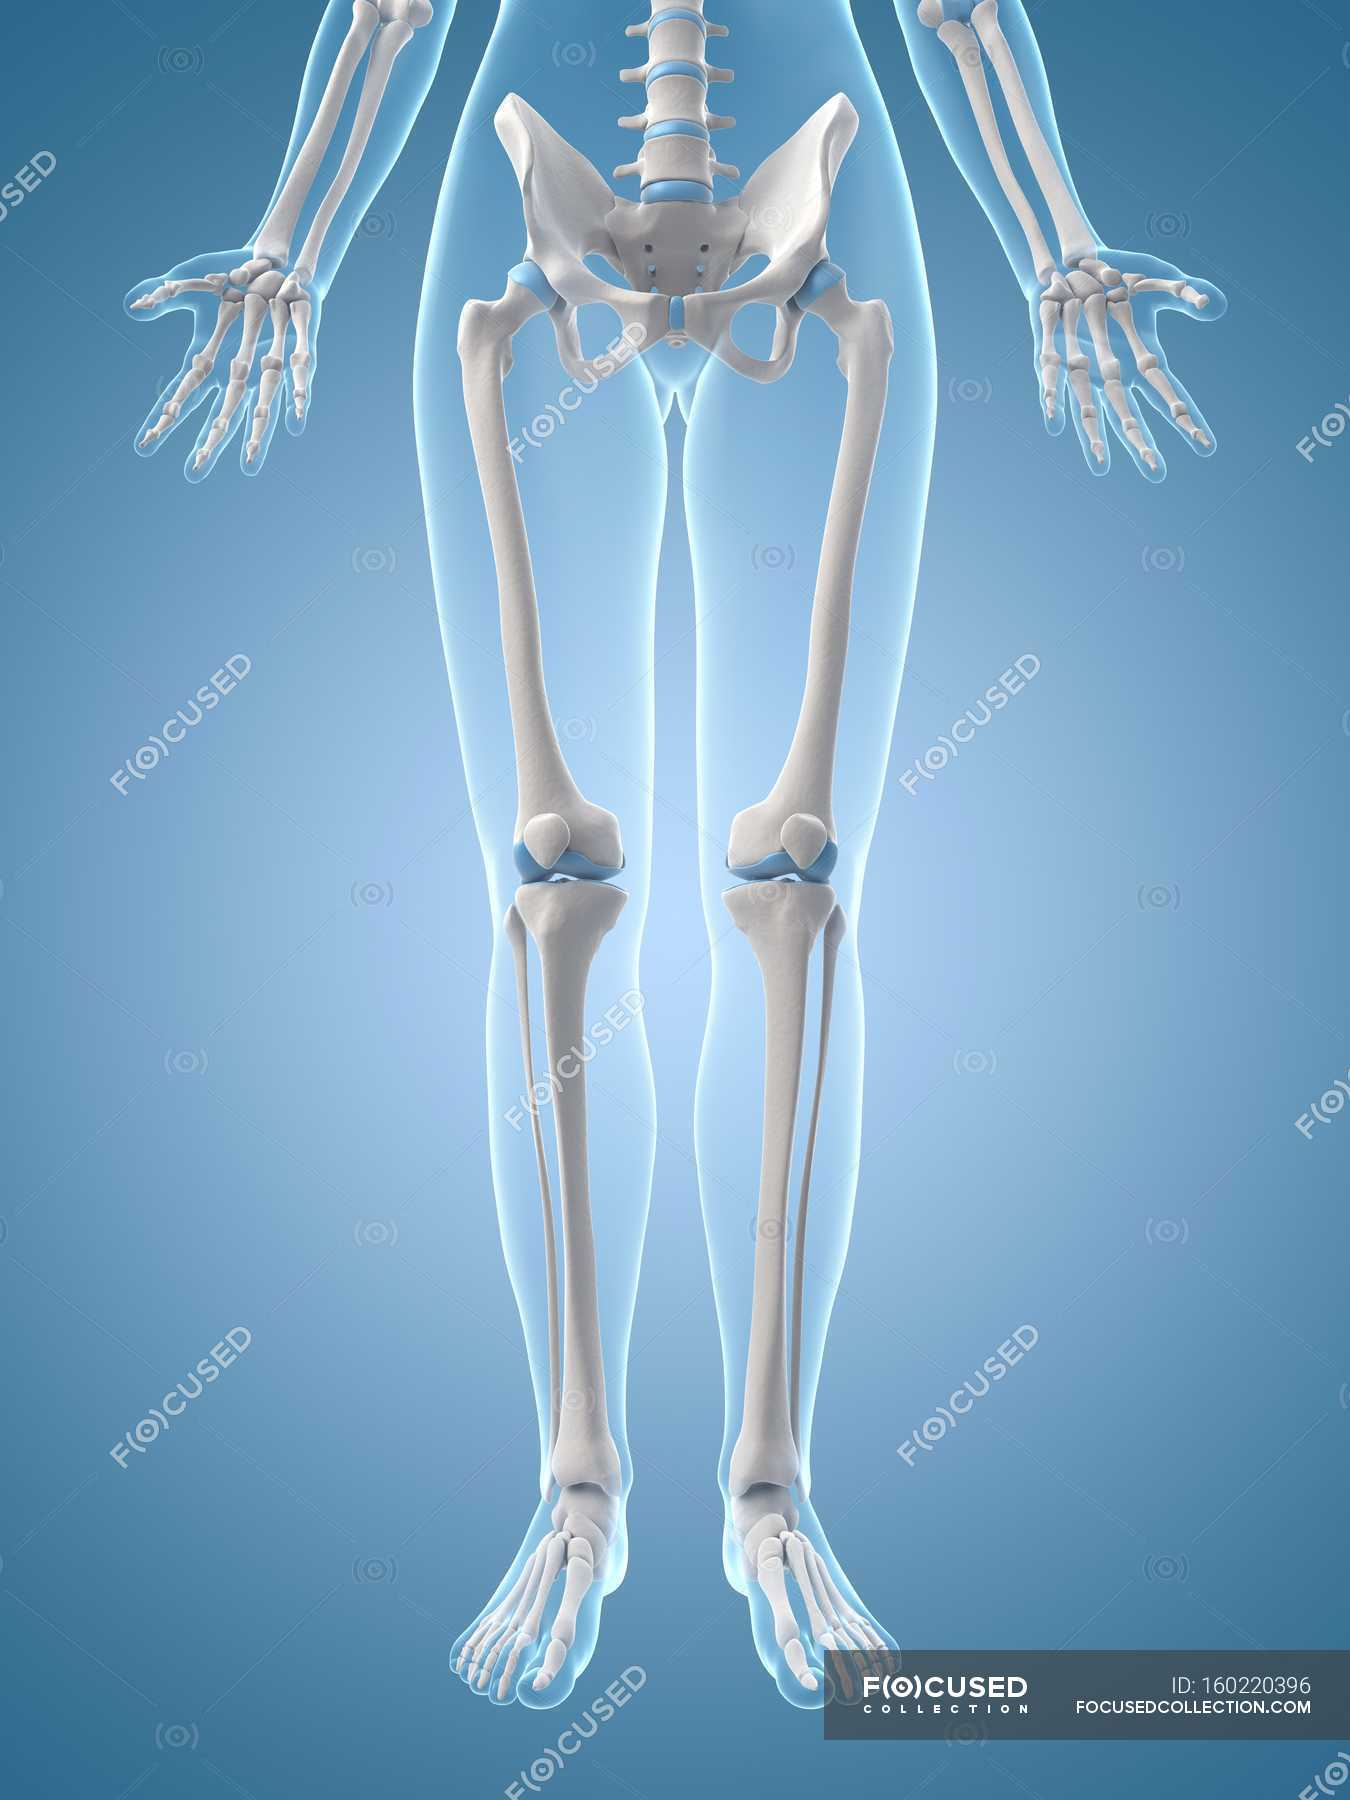 Human Leg Bones And Joints Front View Blue Background Stock